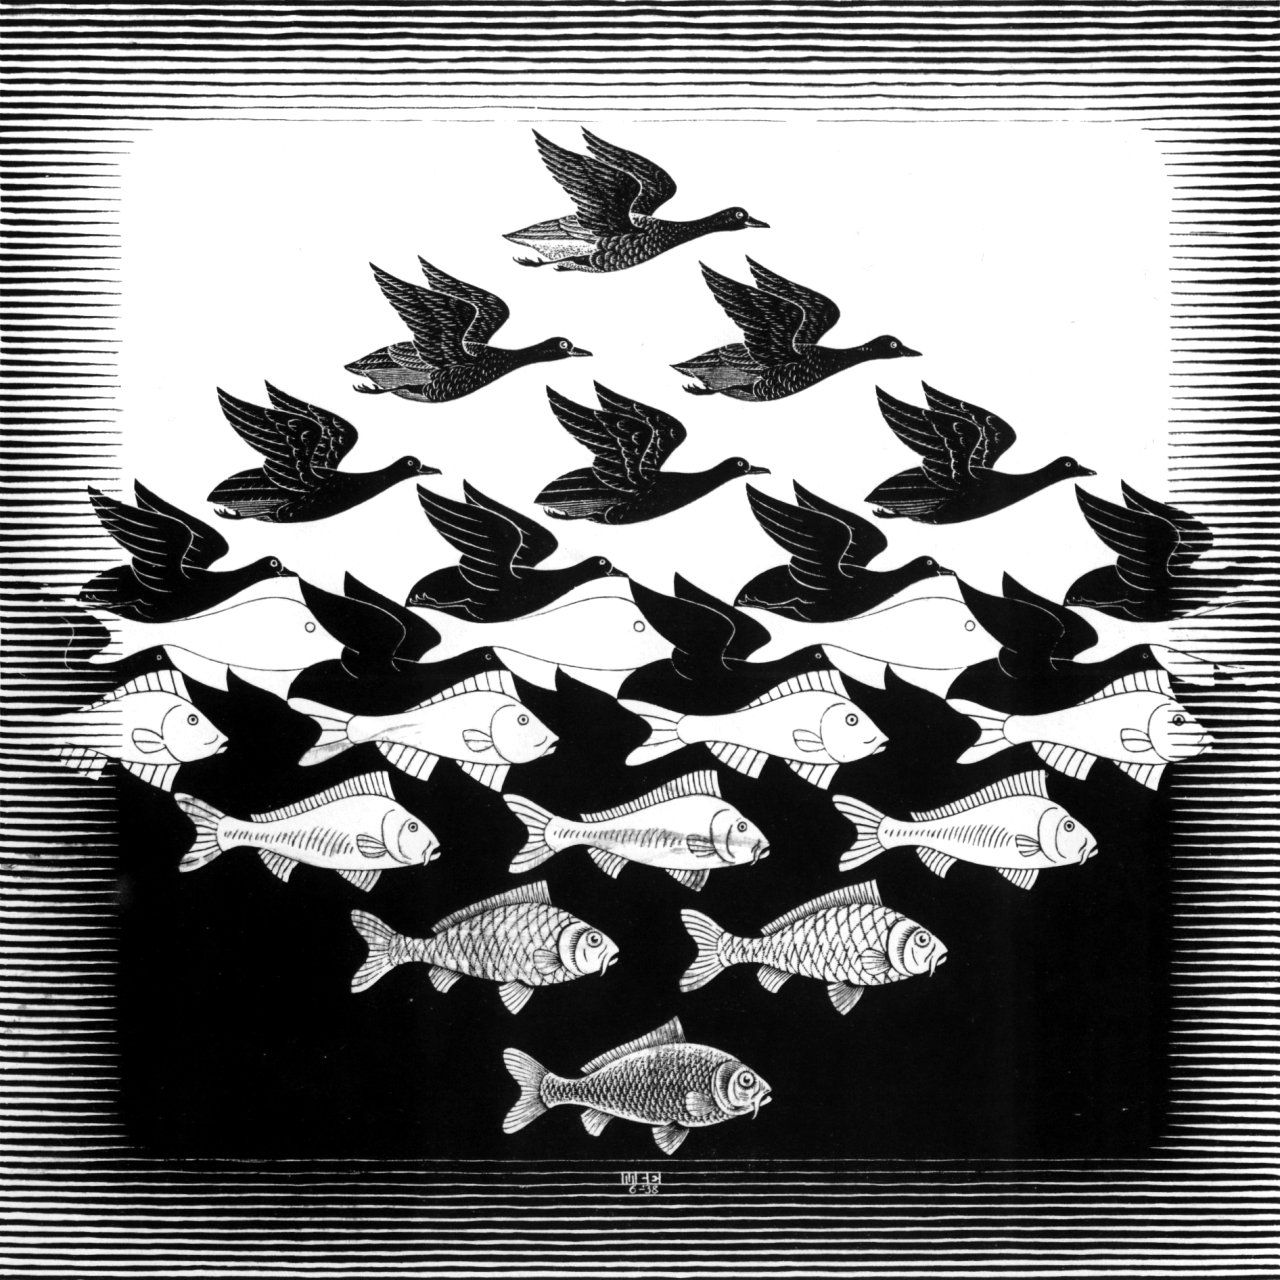 Gestalt Theory- This M.C. Escher image uses the principles of ...